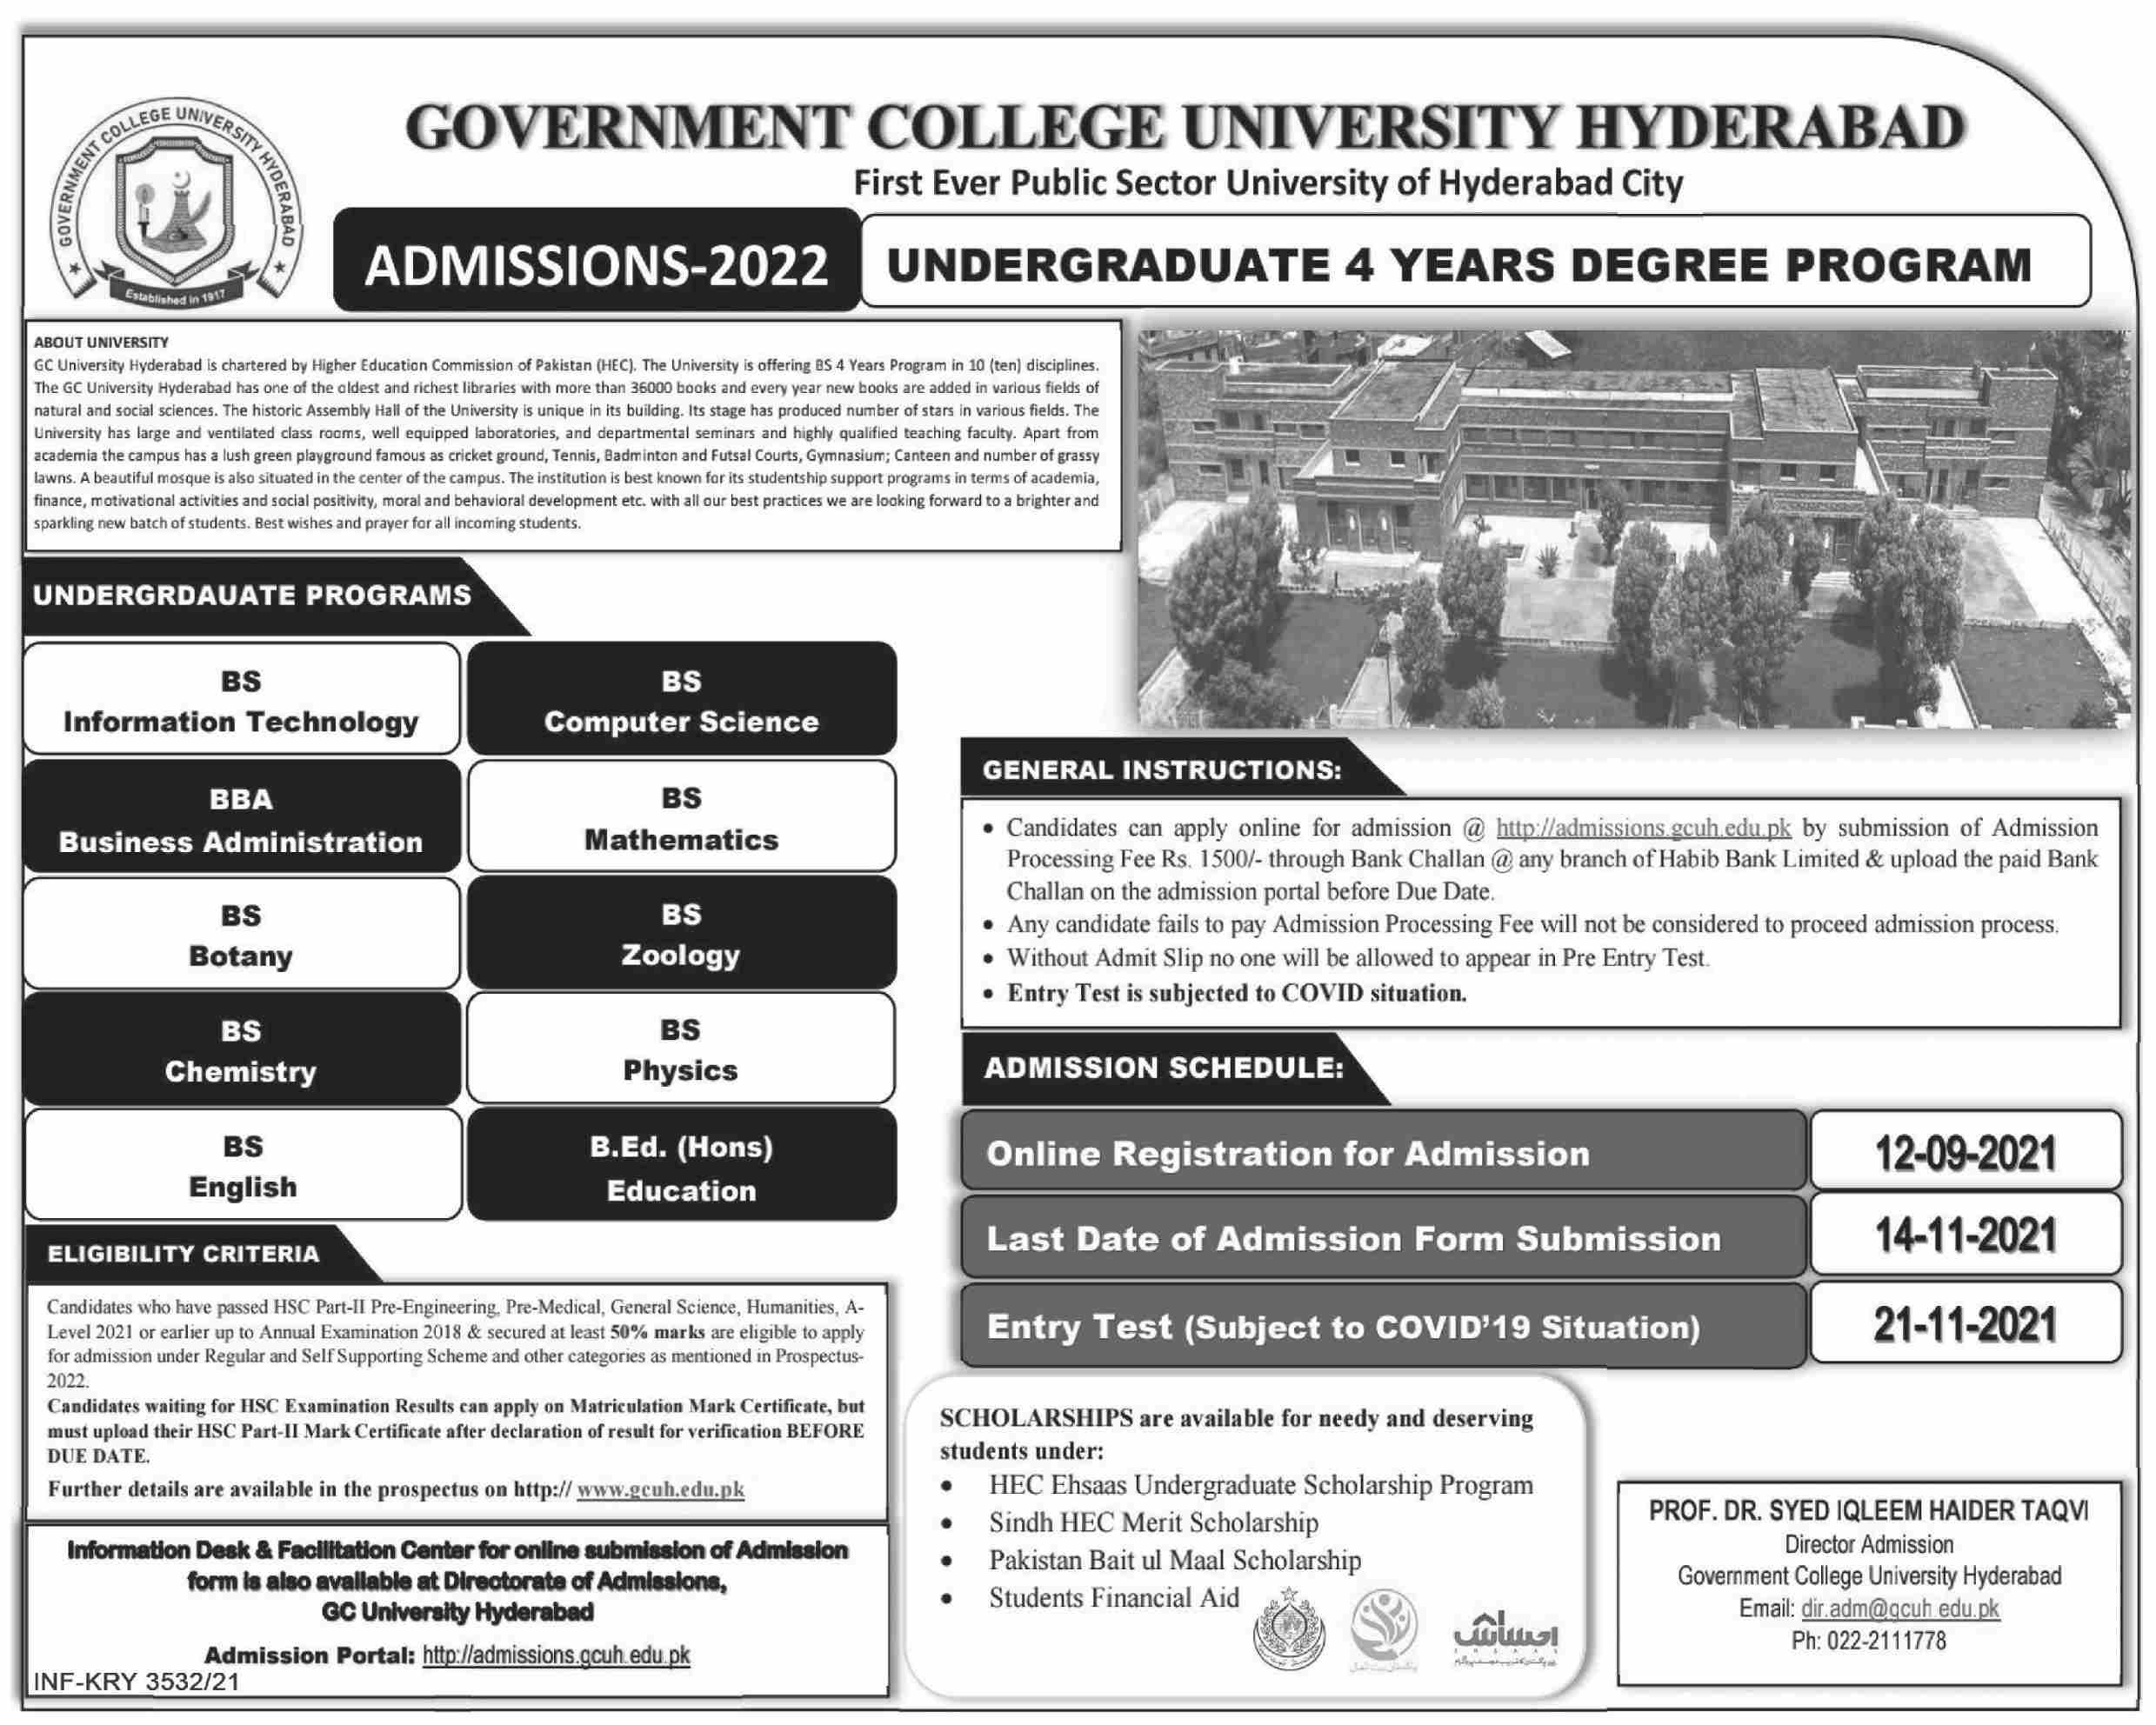 Government College University Hyderabad Admissions